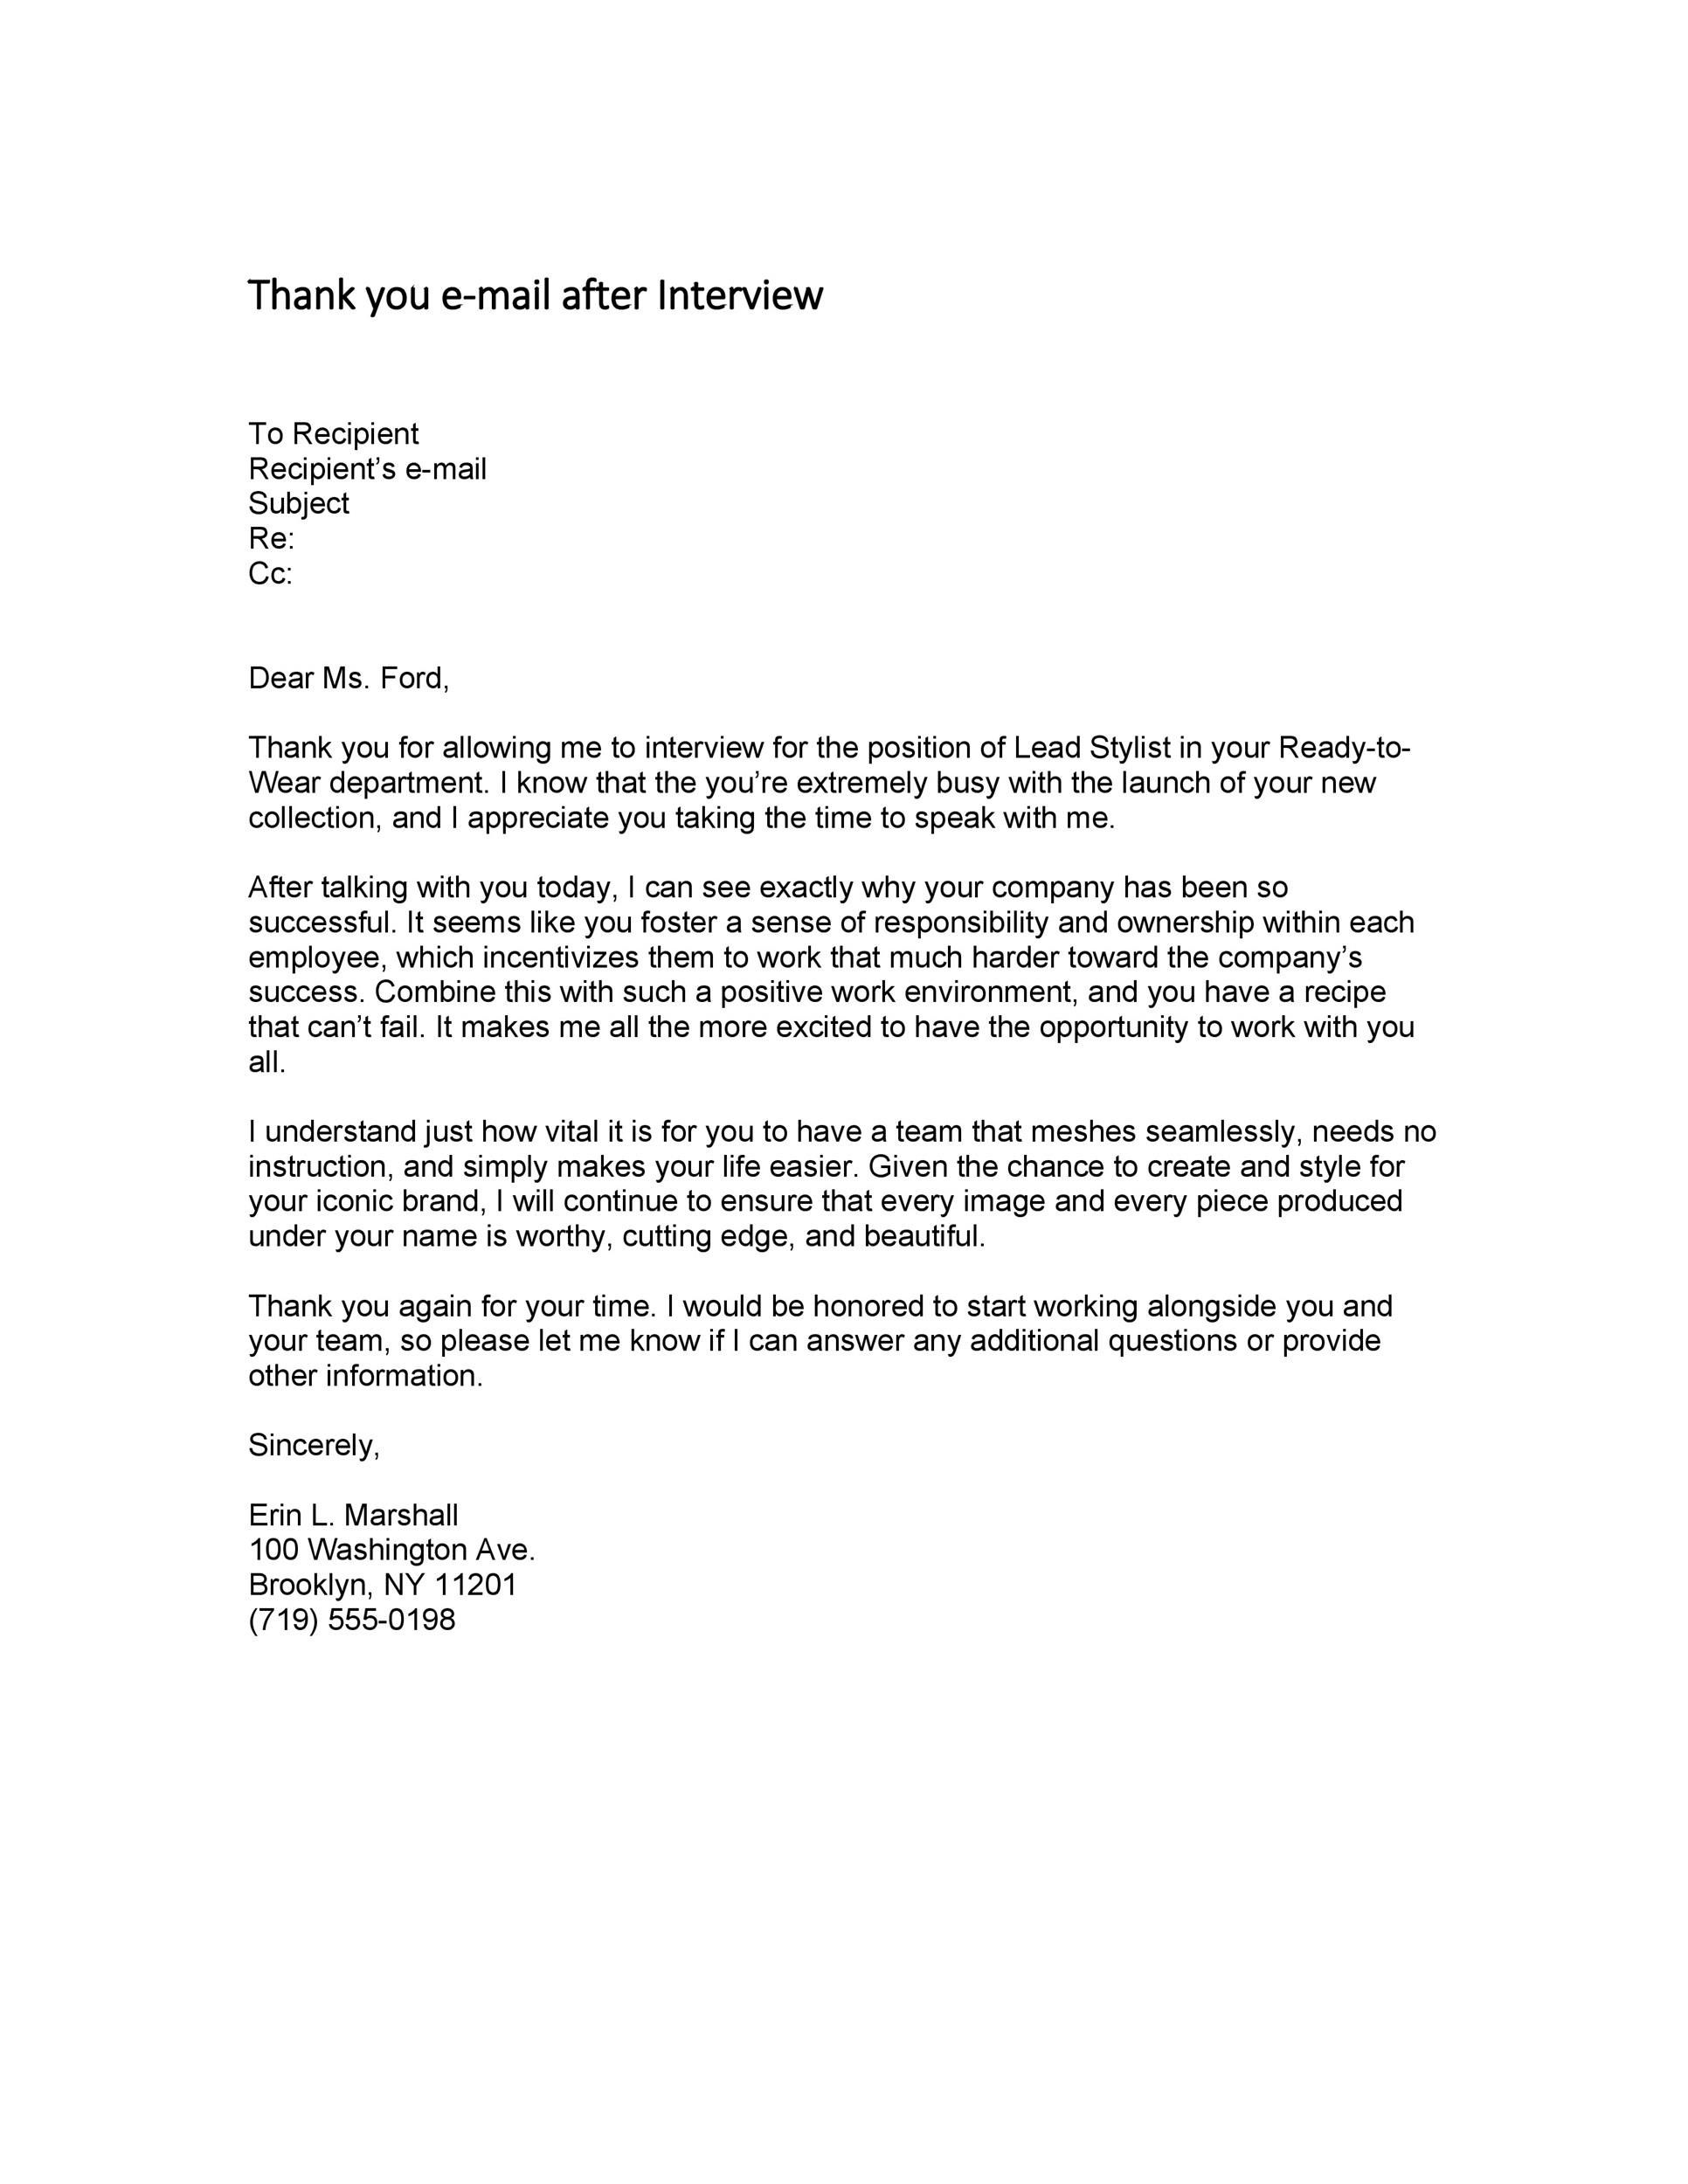 Thank You Letter To Recruiter In 2021 Letter After Interview Thank You Letter Sample Thank You Letter Interview thank you email template